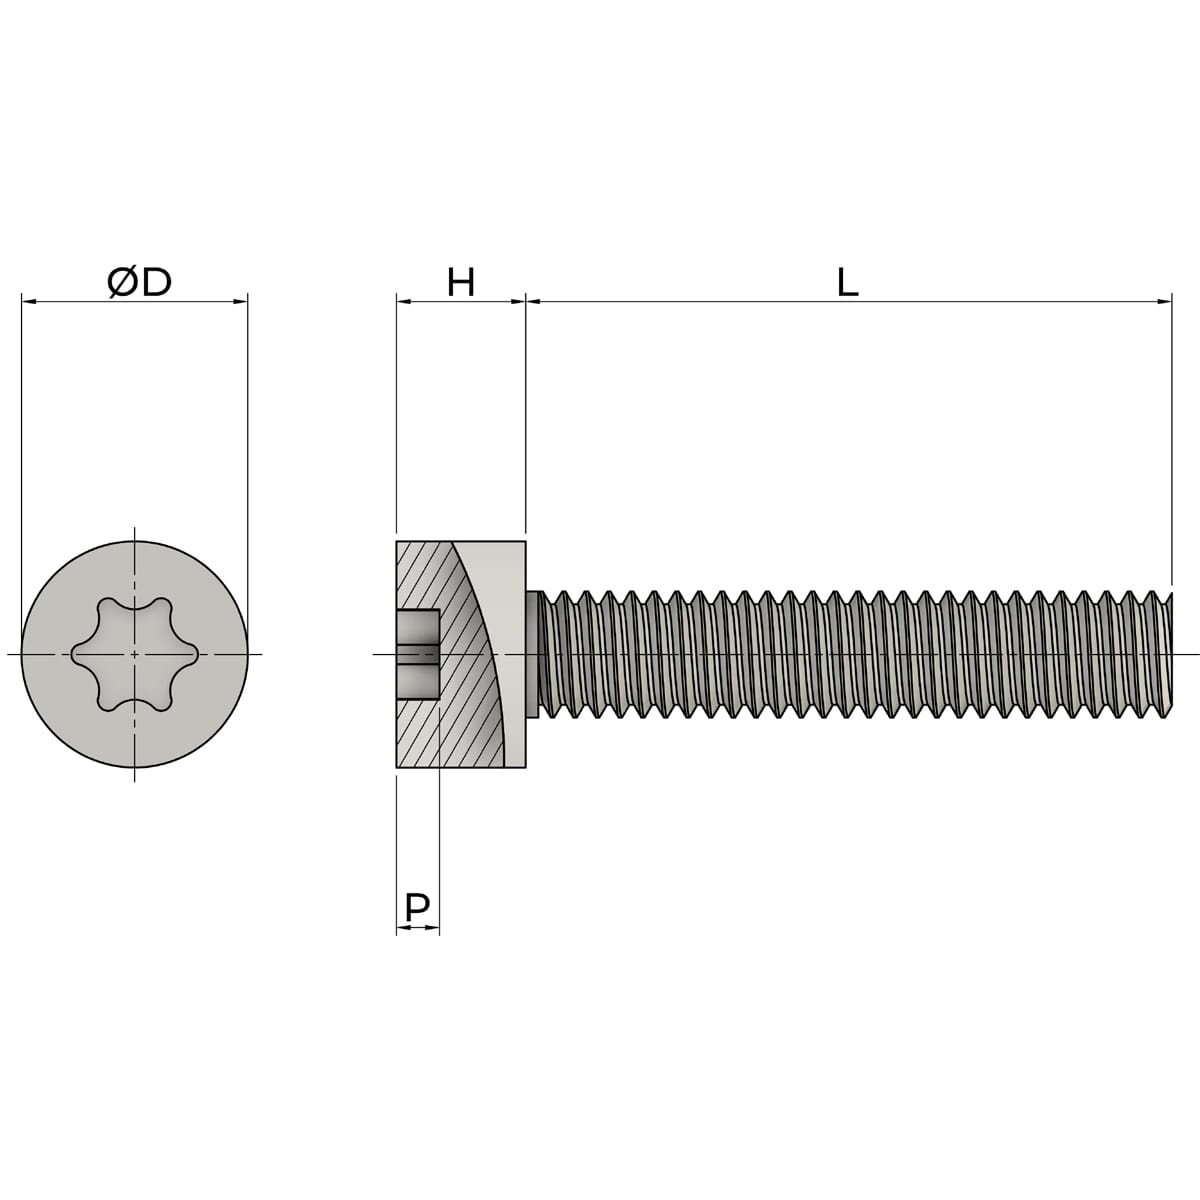 M6 x 18mm Torx Cap Head Screws (ISO 14579) - Marine Stainless Steel (A4) Drawing